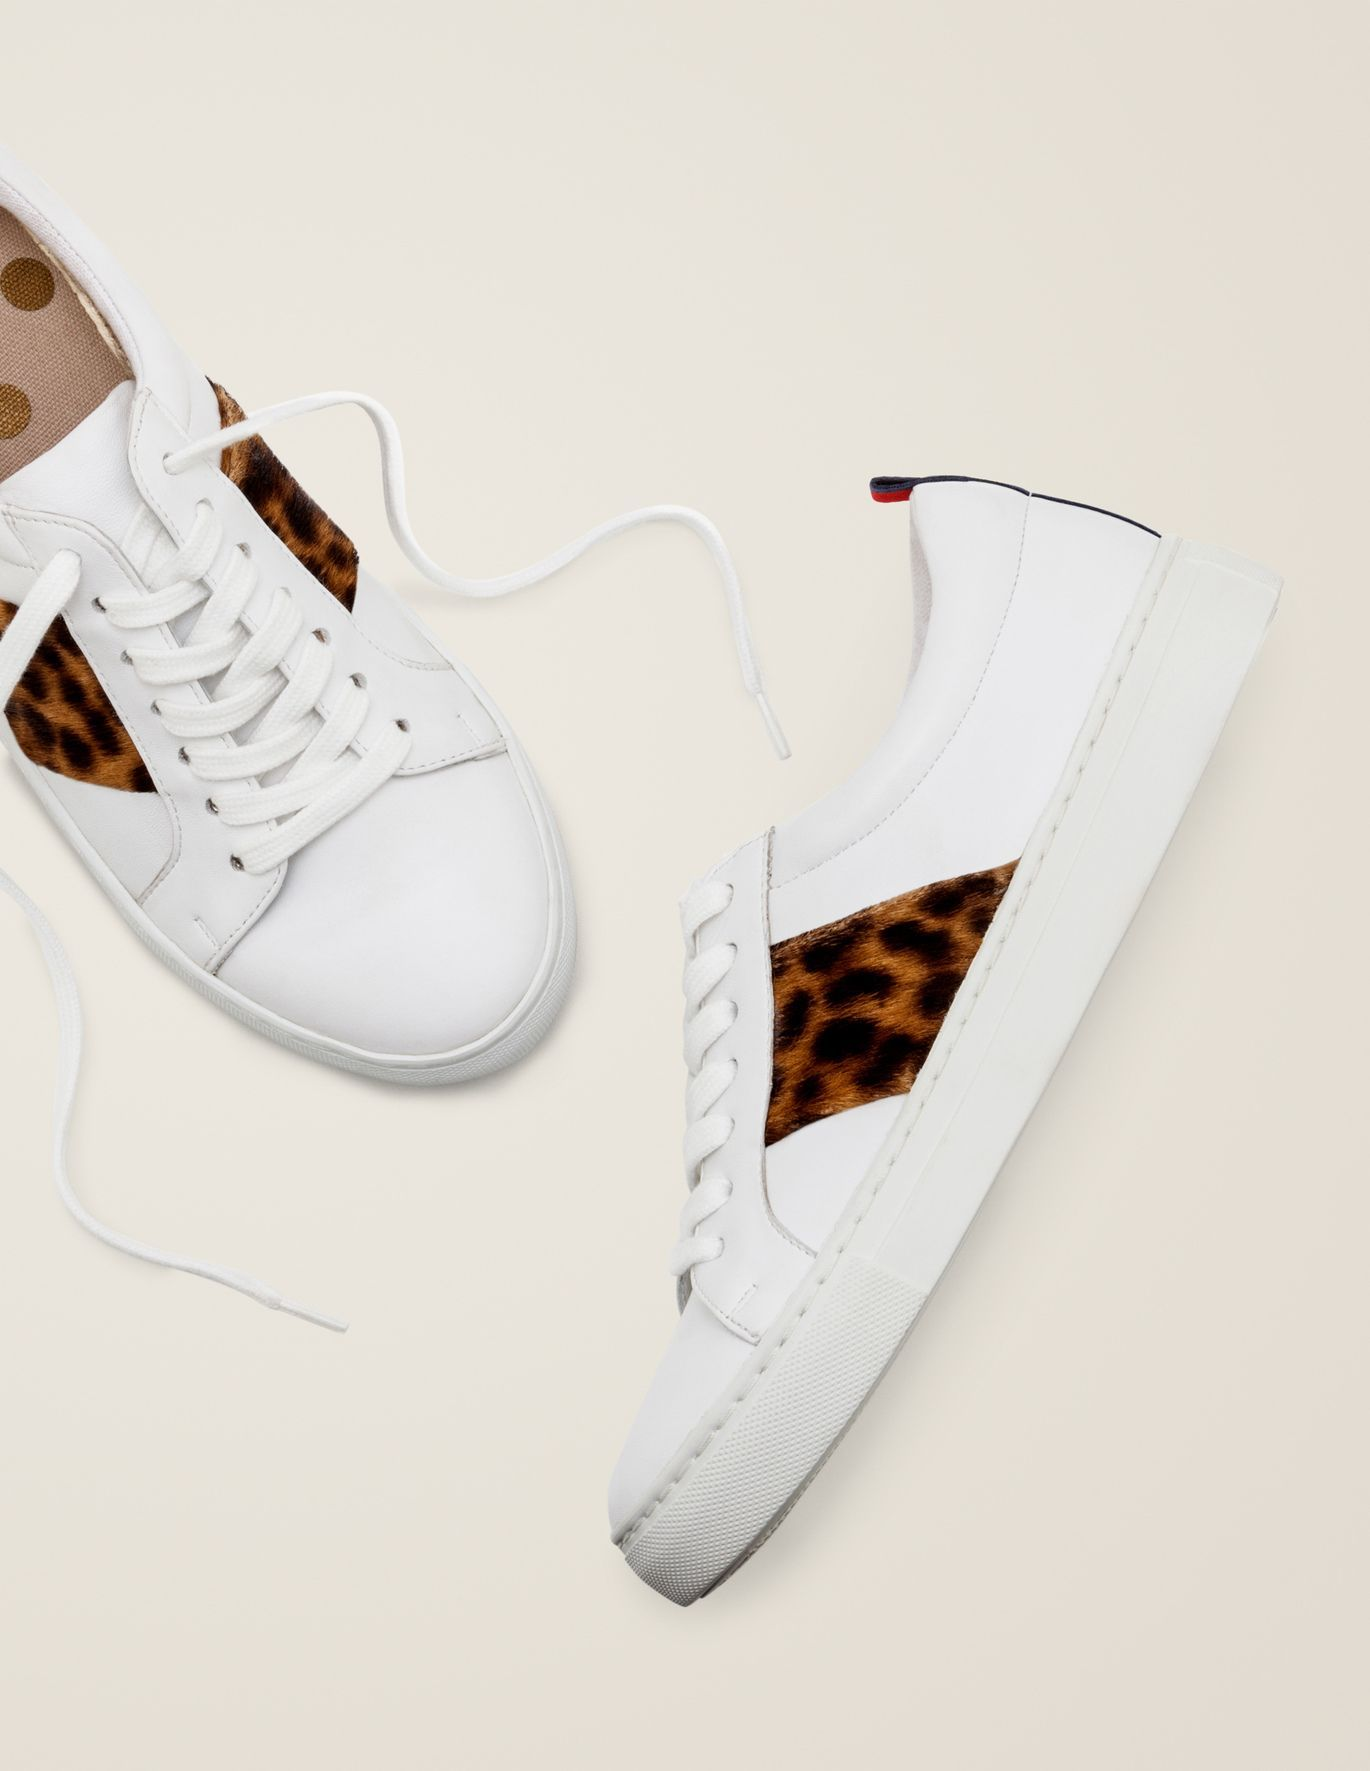 How to wear white trainers in four ways